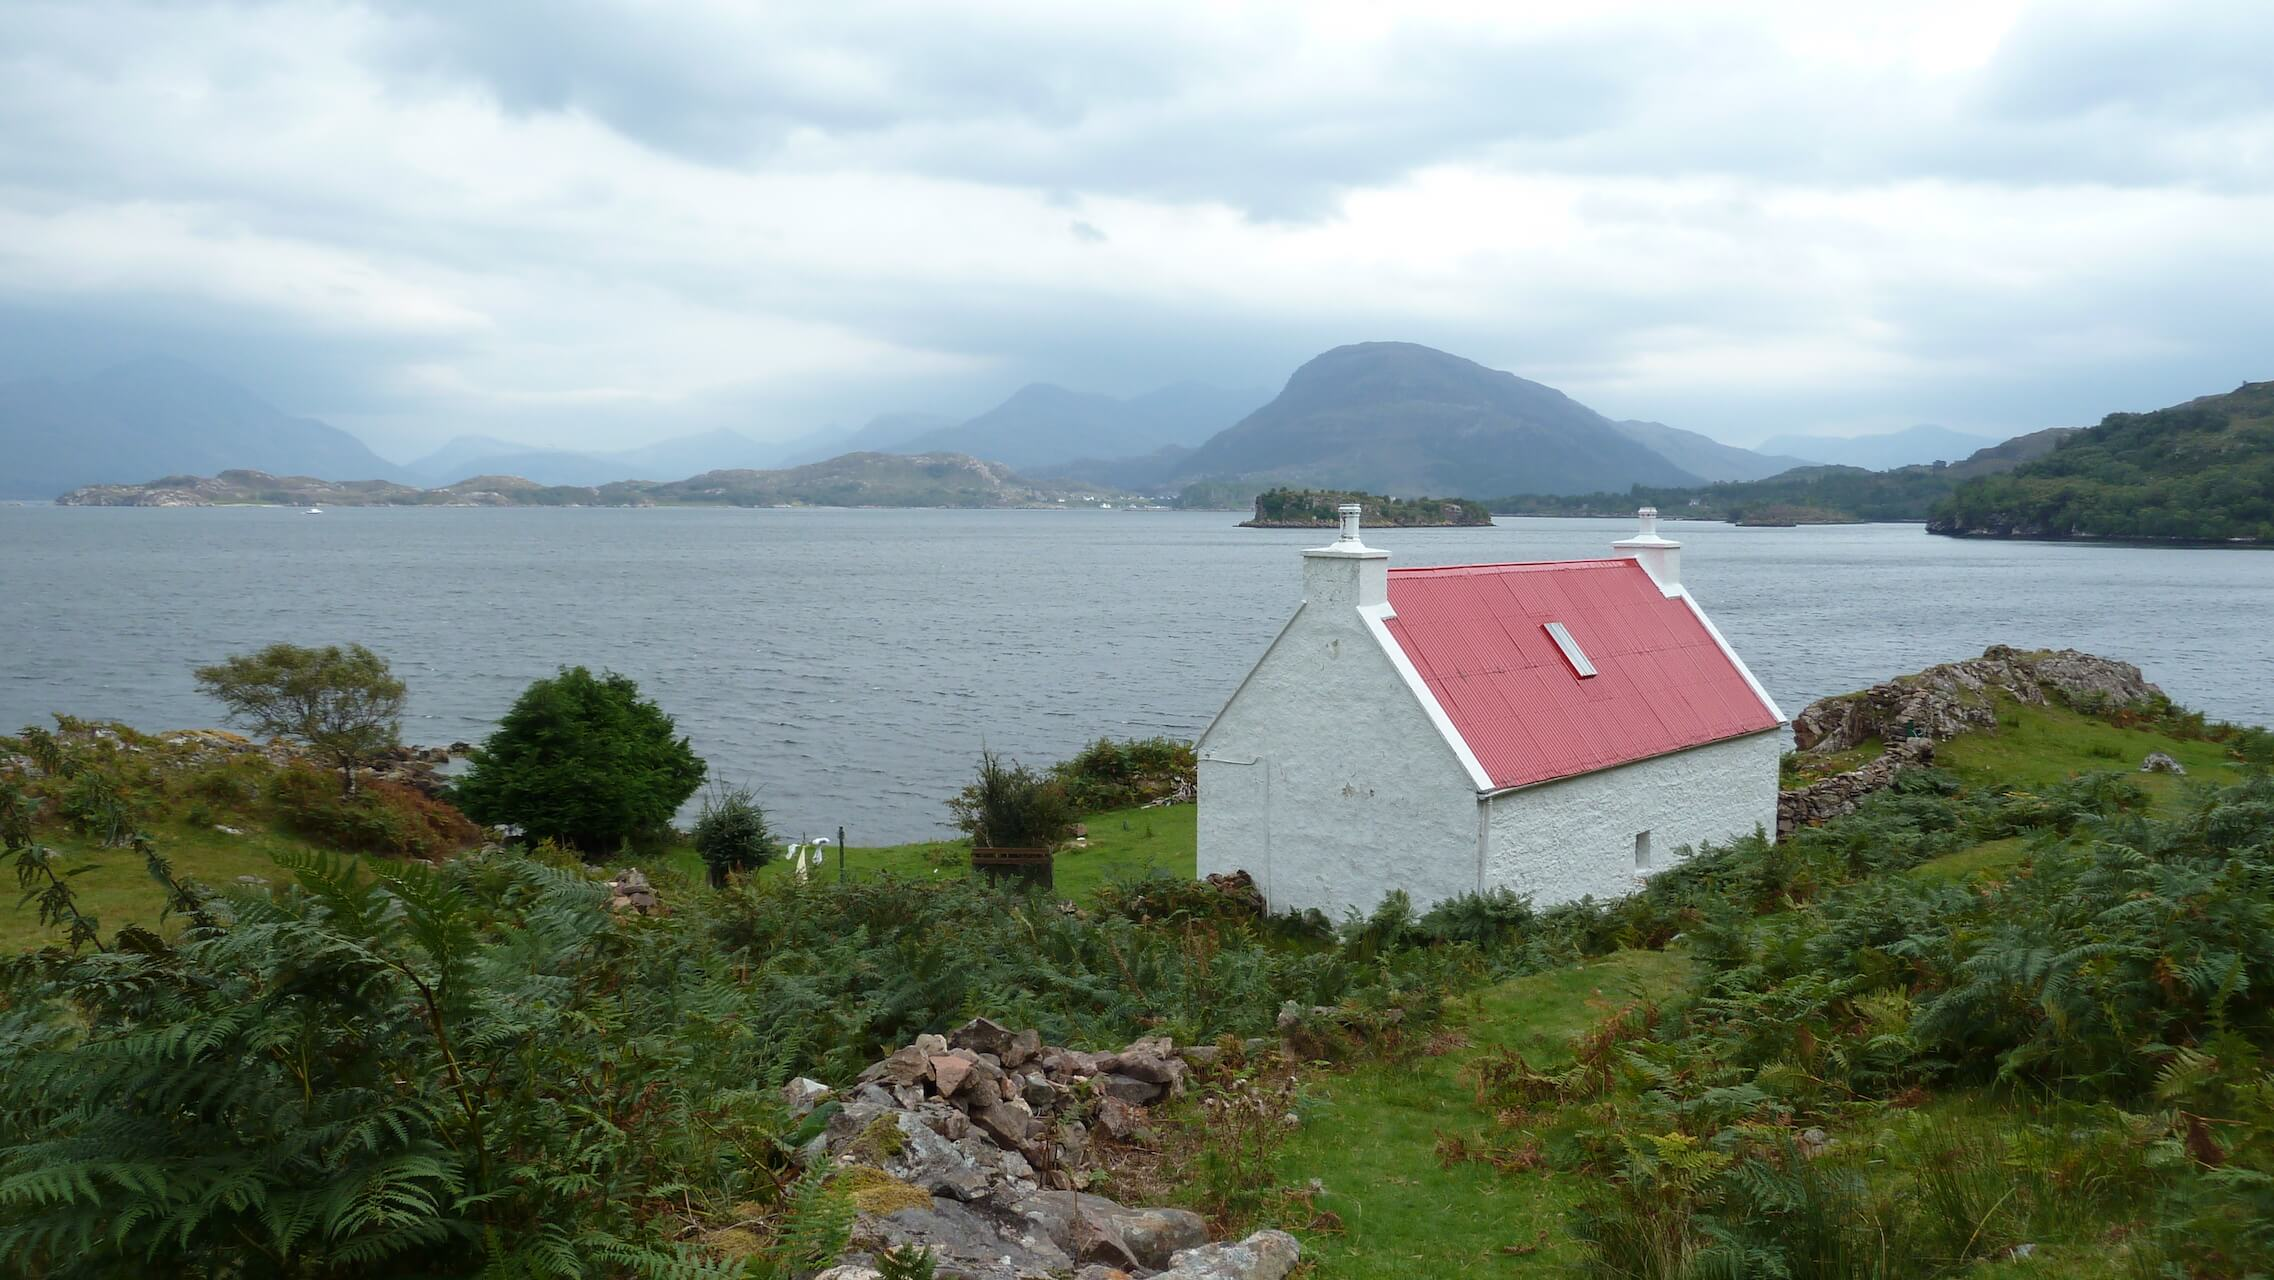 Picturesque Red Roof Cottage, often photographed by tourists, Ardheslaig, Applecross Peninsula